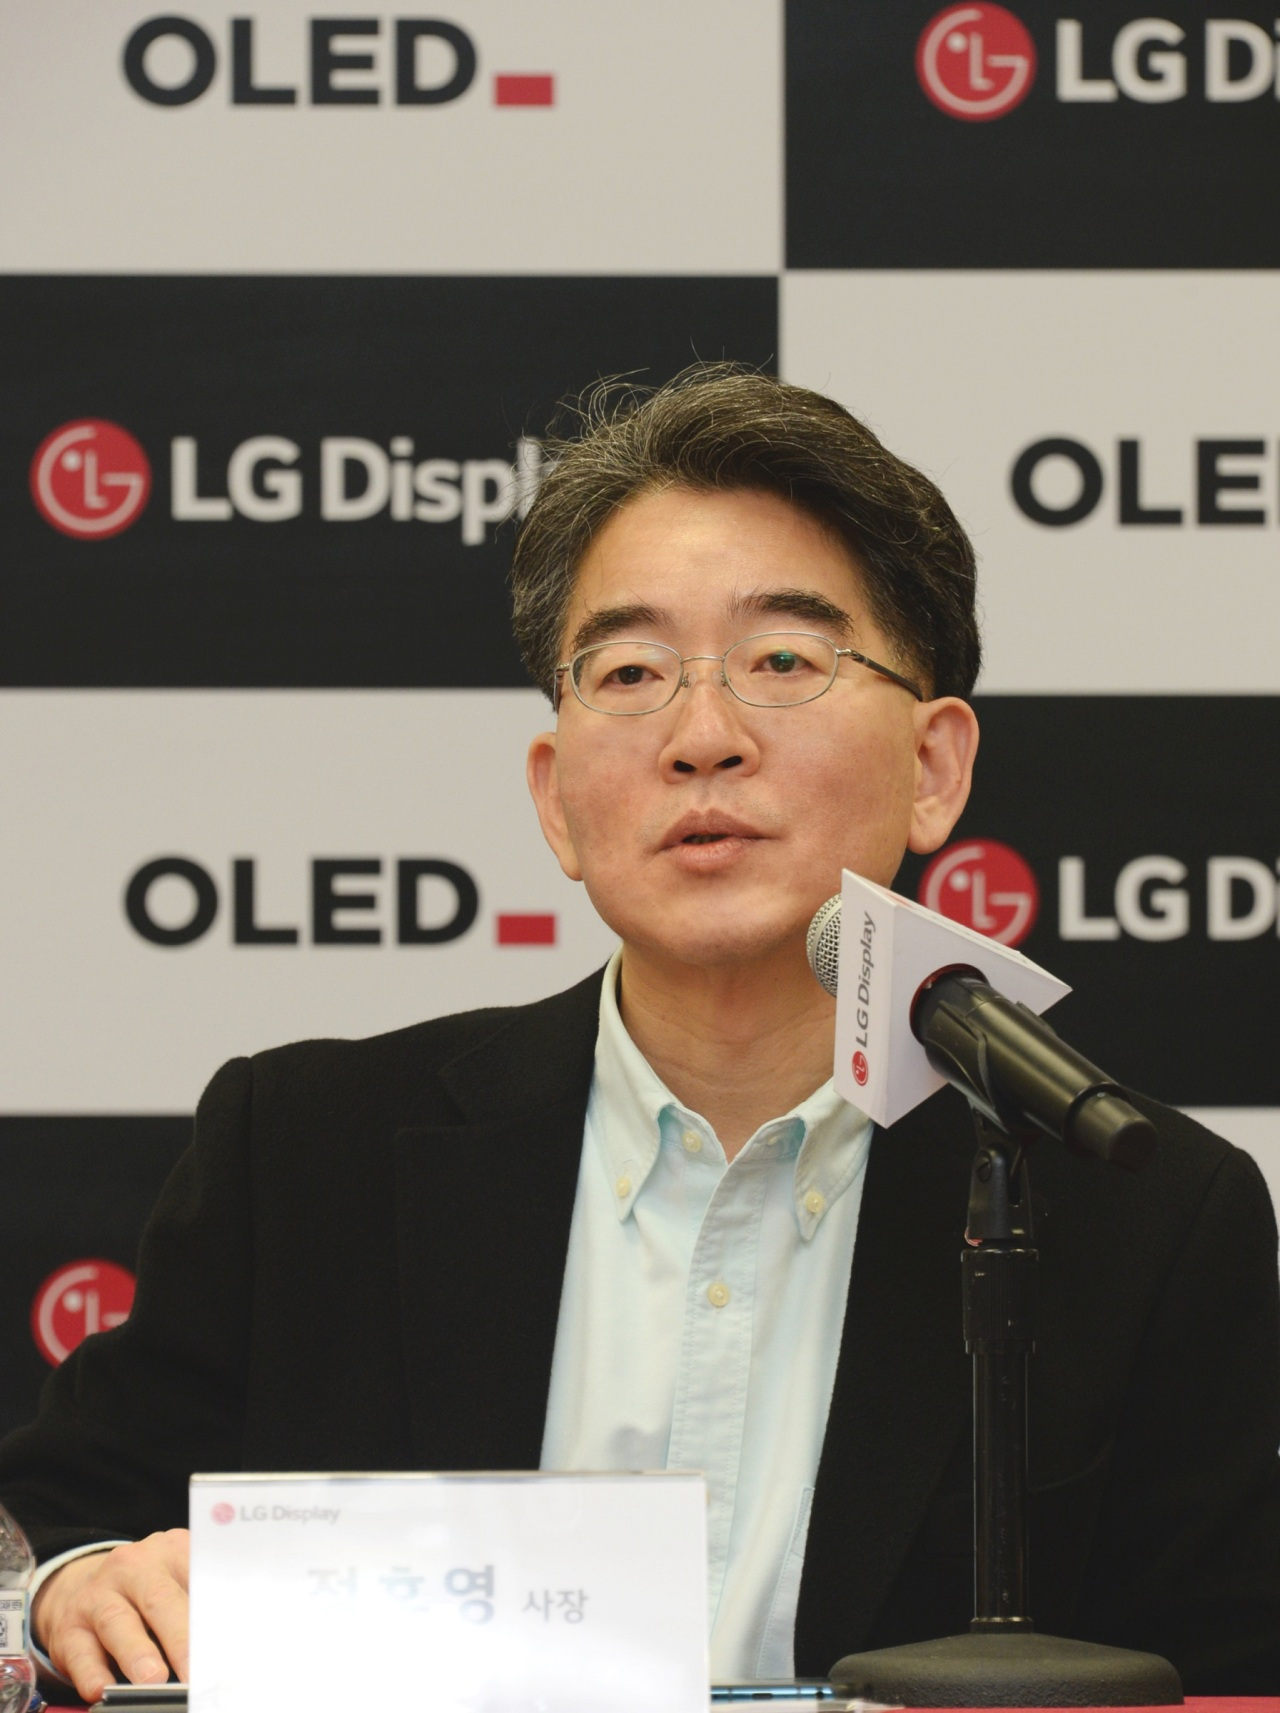 LG Display CEO Jeong Ho-young speaks during a press conference in Las Vegas on Monday. (LG Display)